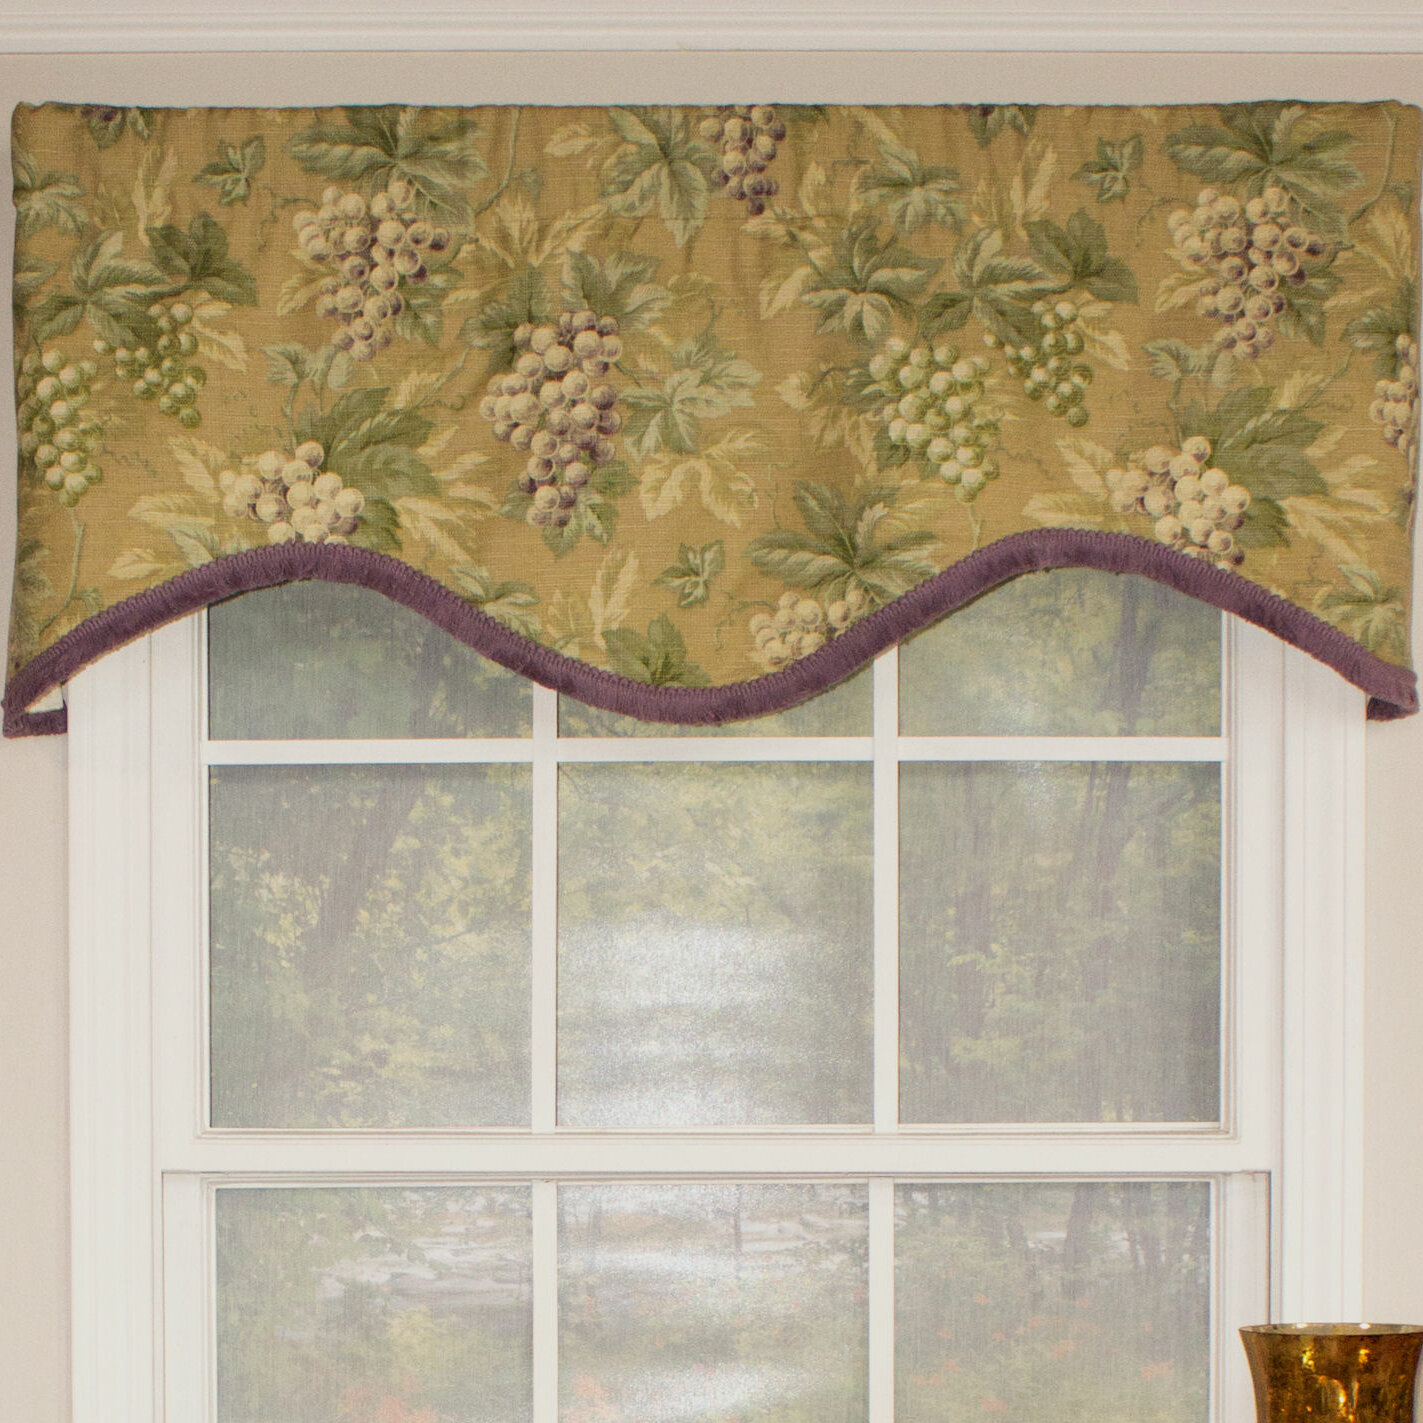 why is window cornice sebastian of the treatments designs for image diy your valance home best